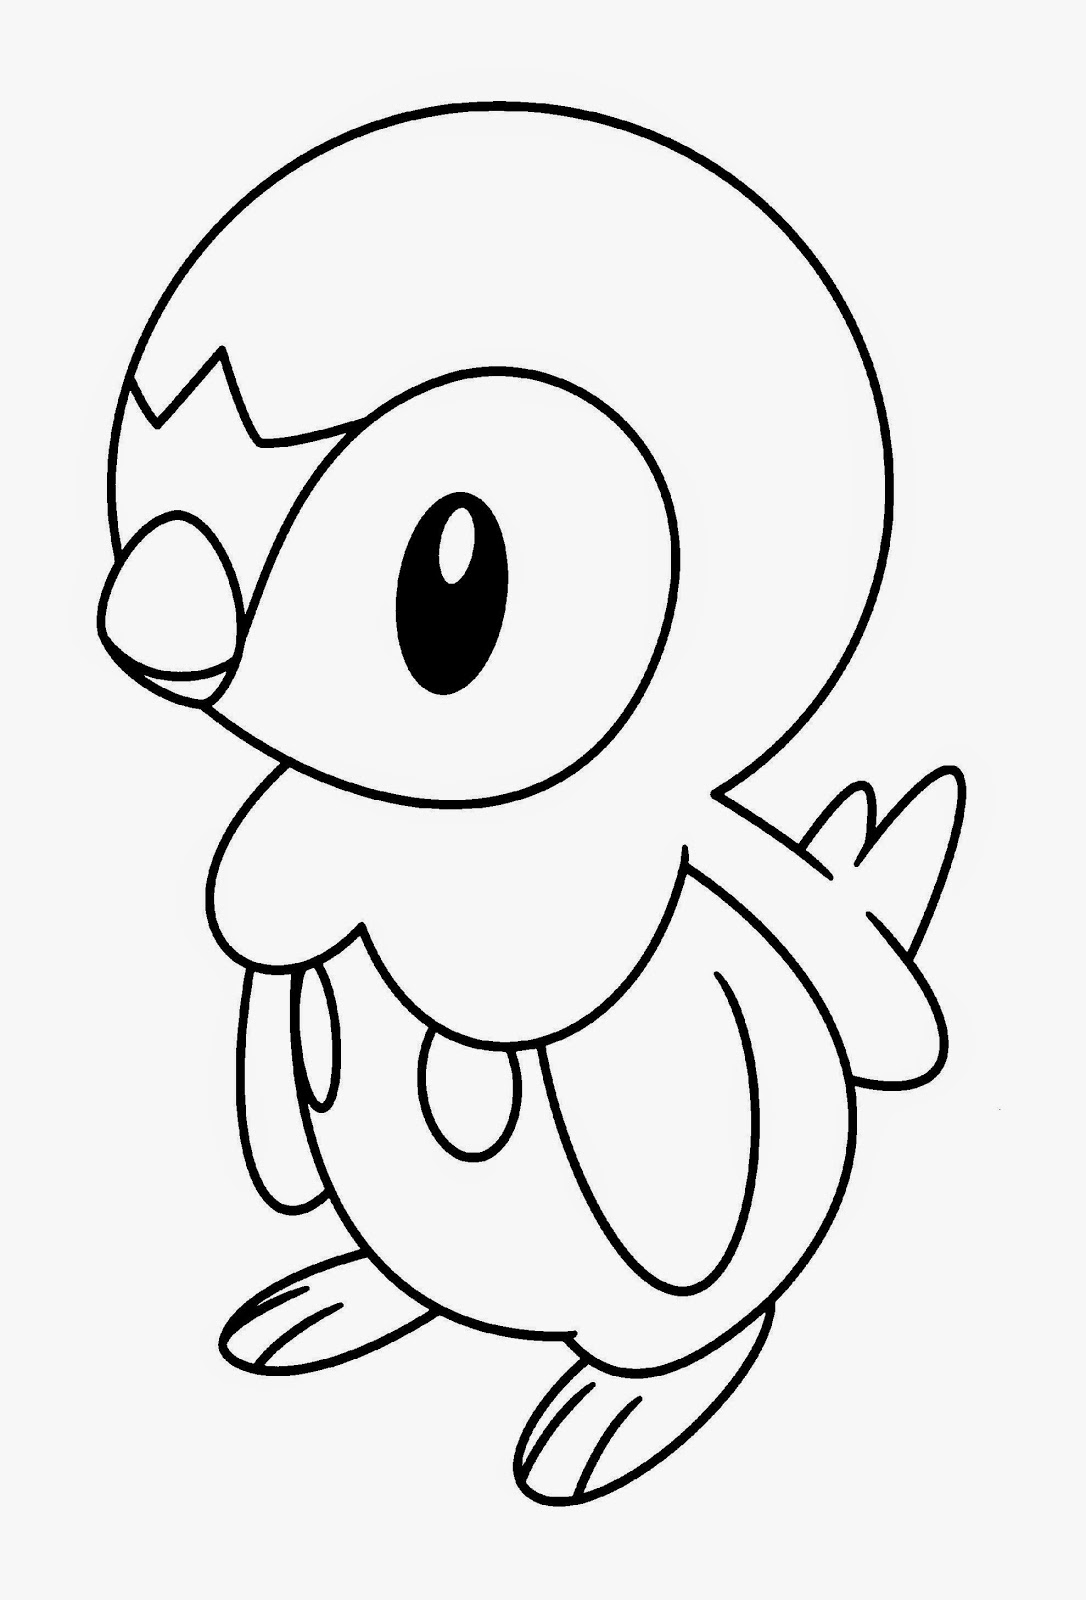 Pokemon coloring pages free coloring sheet for Pokemon printable coloring pages